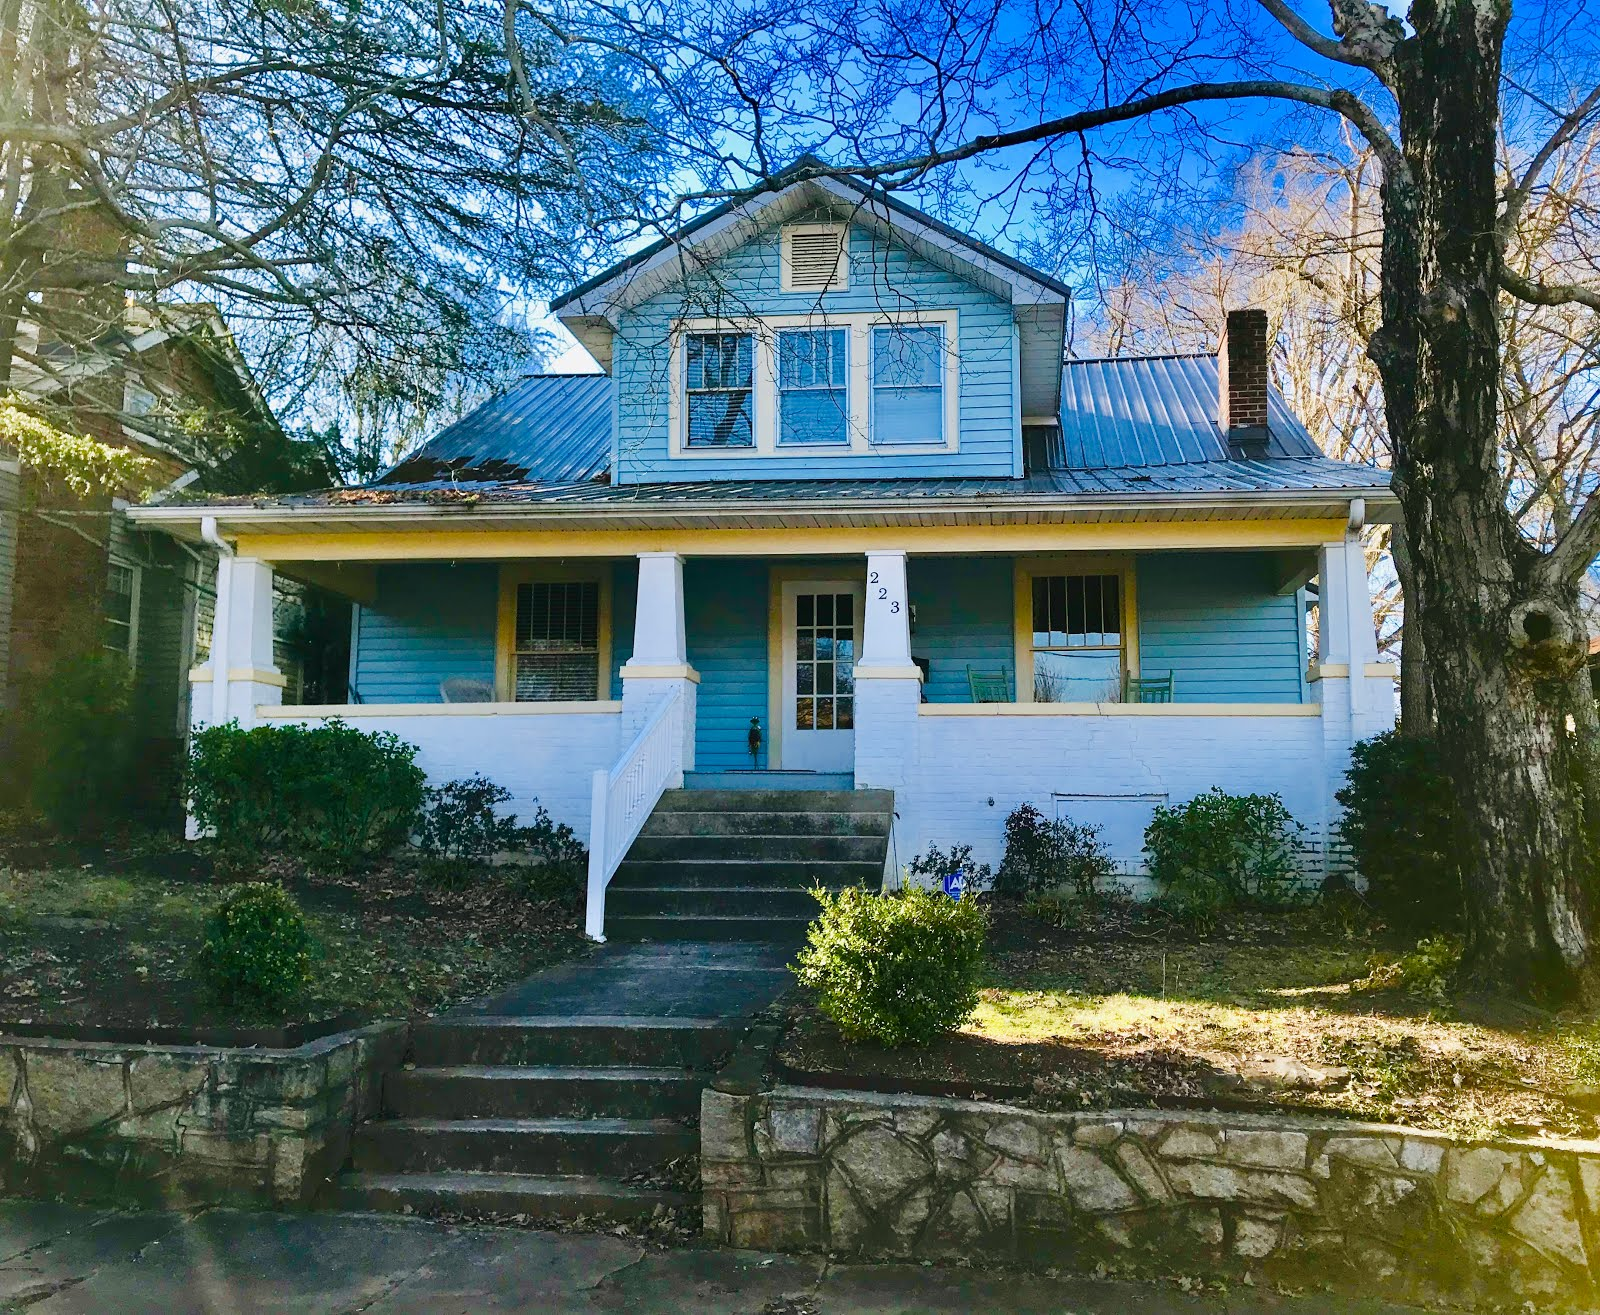 223 Wiley Avenue, Salisbury NC 28144 ~ circa 1915 ~ $189,000